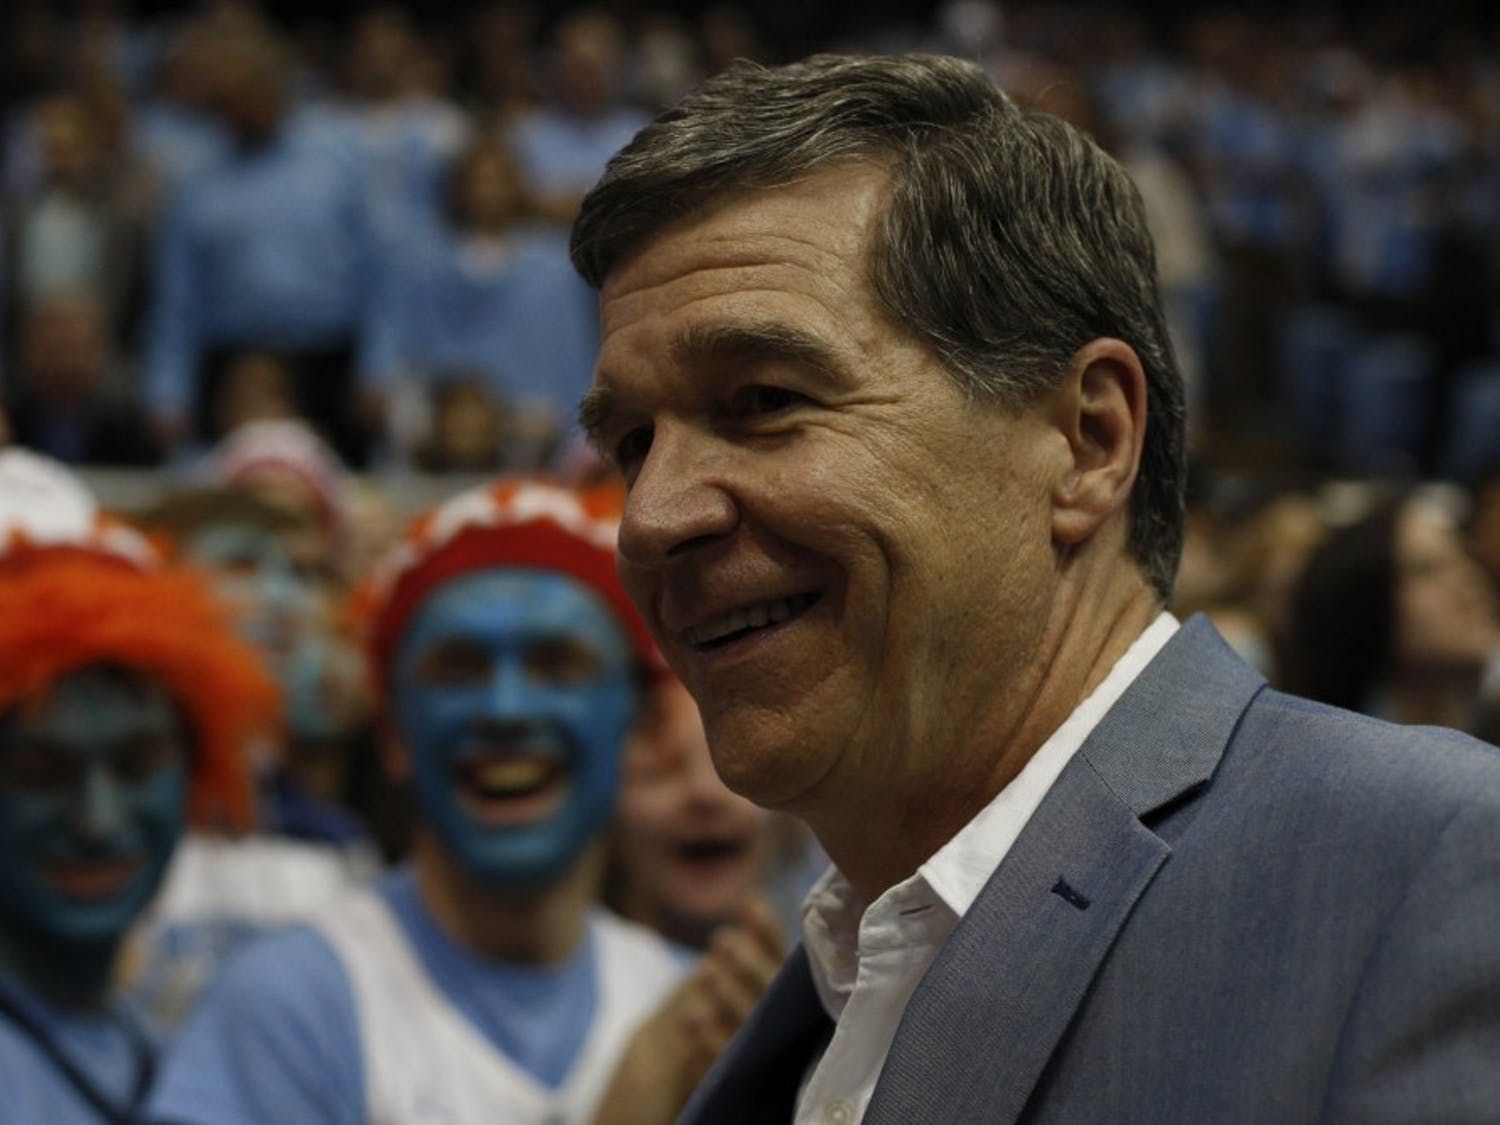 NC Governor Roy Cooper attends the UNC versus Duke game UNC at the Smith Center on Saturday, March 9, 2019. The Tar Heels defeated Duke 70-79 to become ACC regular season champions.